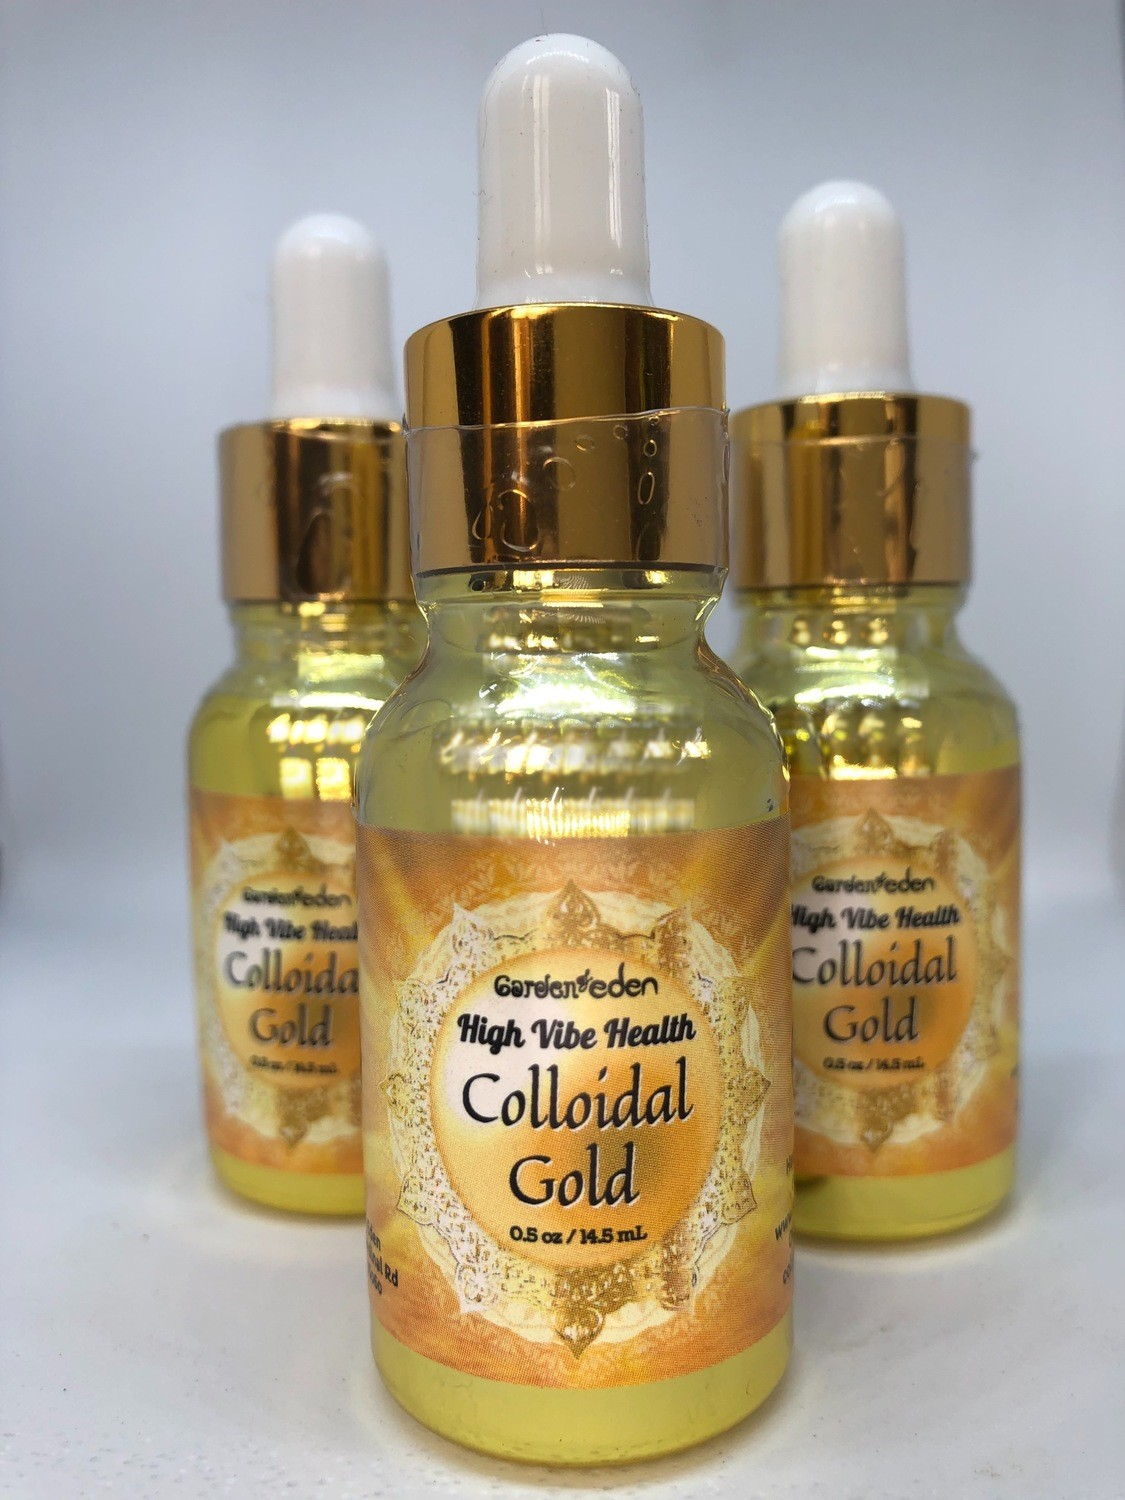 3 bottles of Colloidal Gold